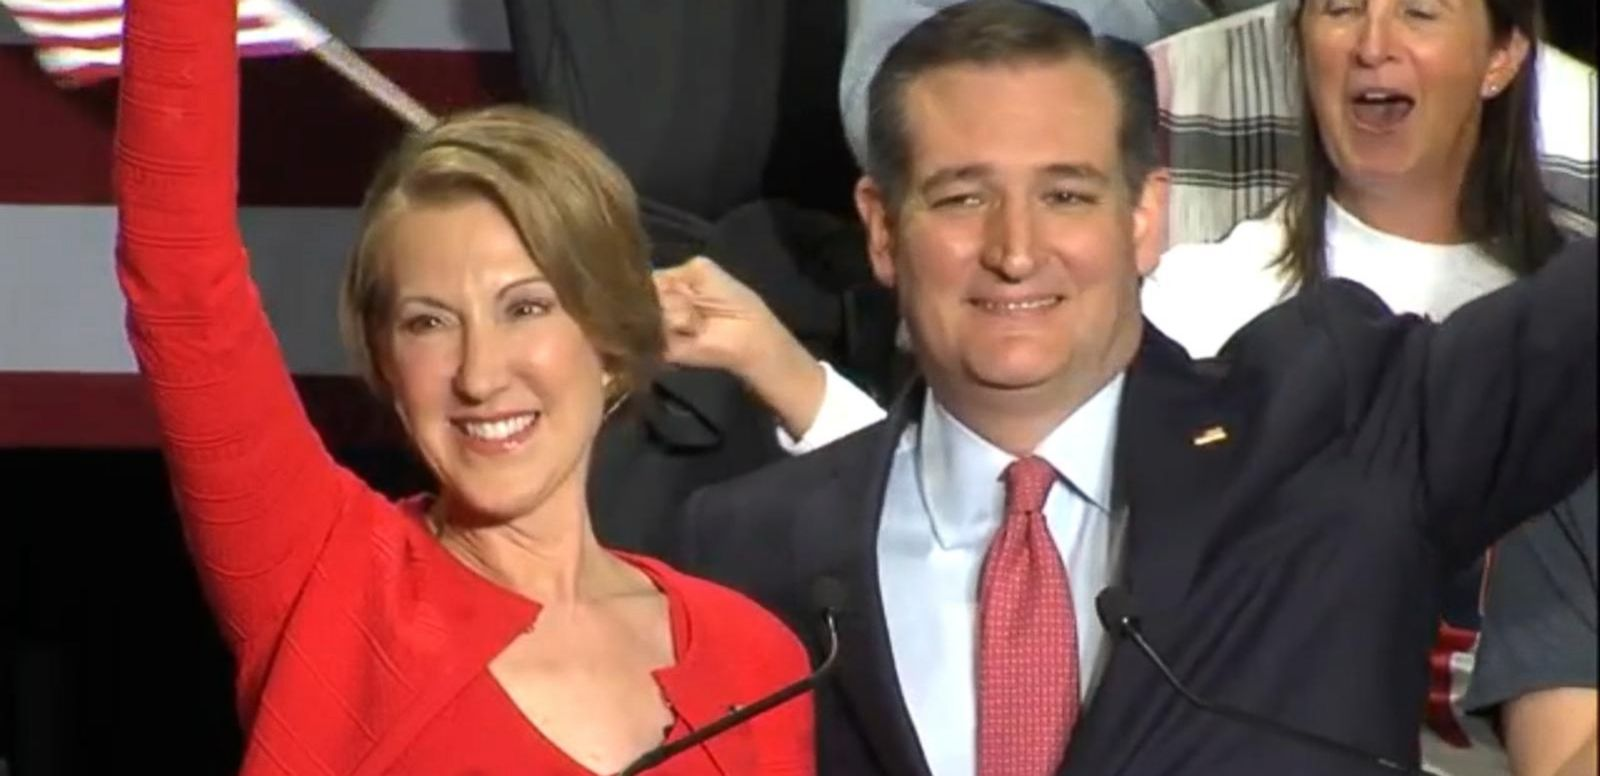 VIDEO: Ted Cruz Picks Carly Fiorina as Running Mate